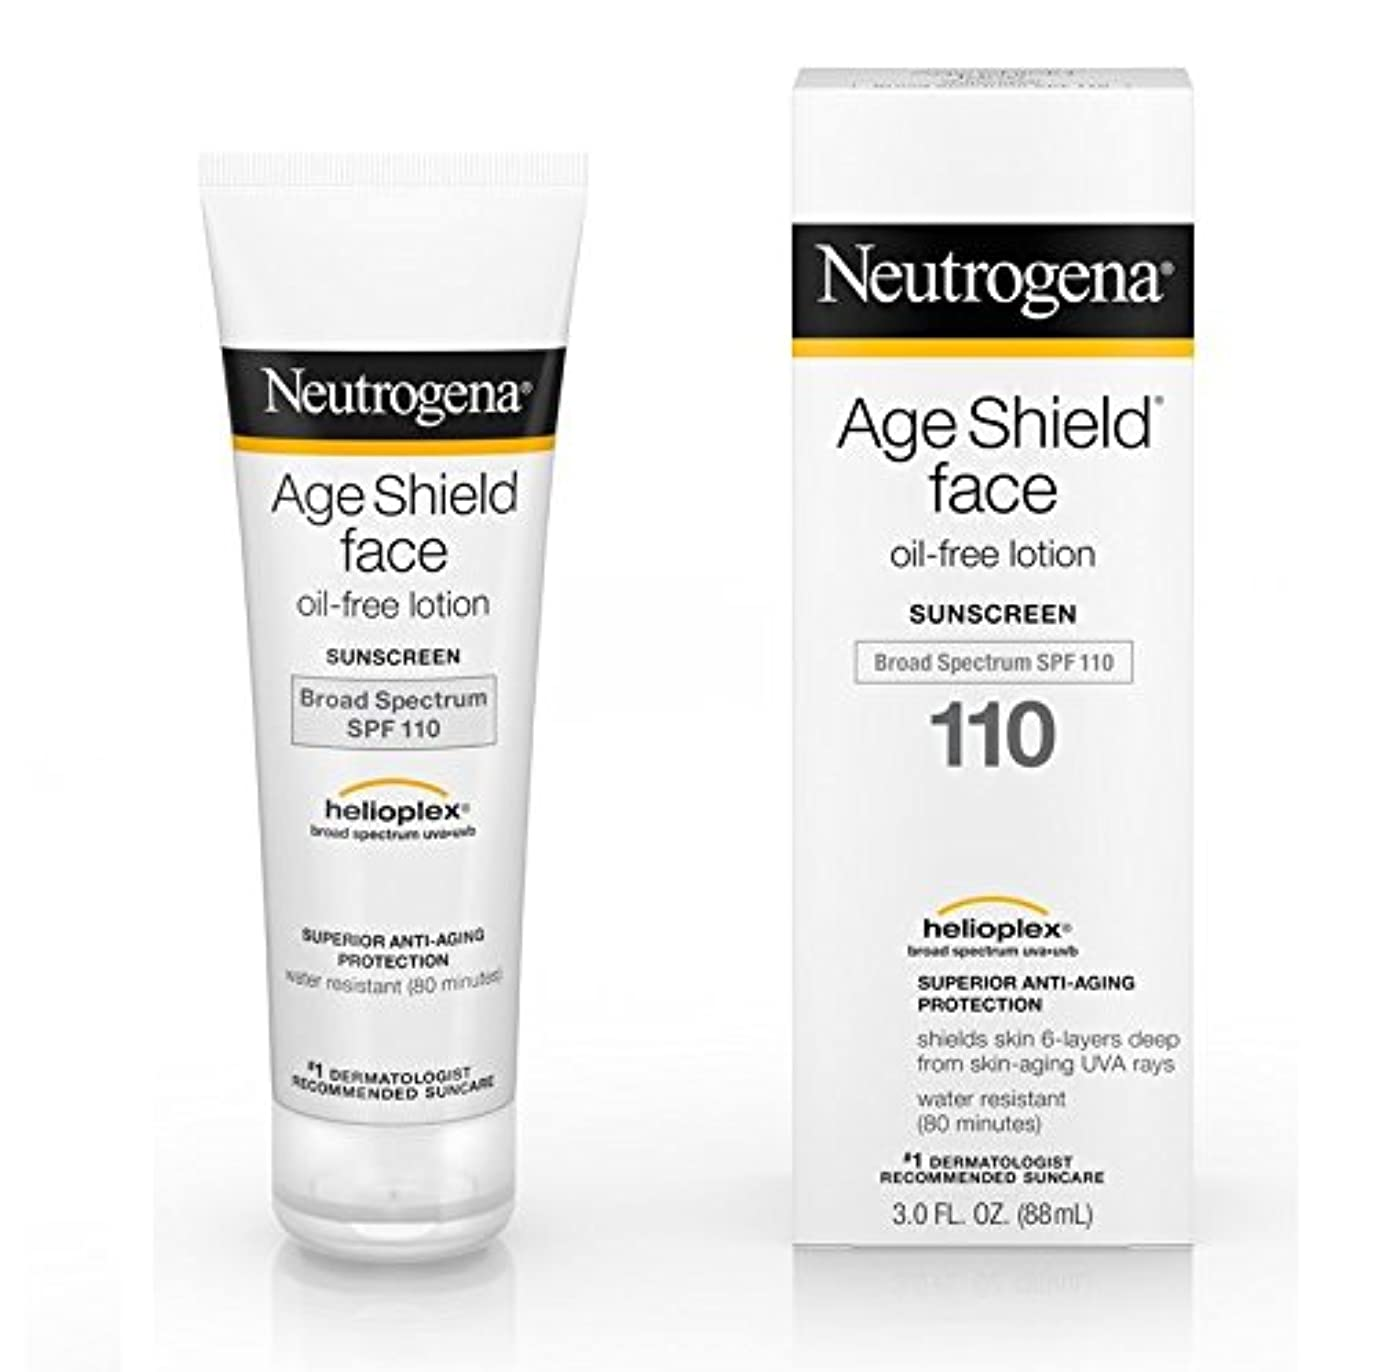 オアシス細い数学的な【海外直送品】Neutrogena Age Shield? Face Oil-Free Lotion Sunscreen Broad Spectrum SPF 110 - 3 FL OZ(88ml)